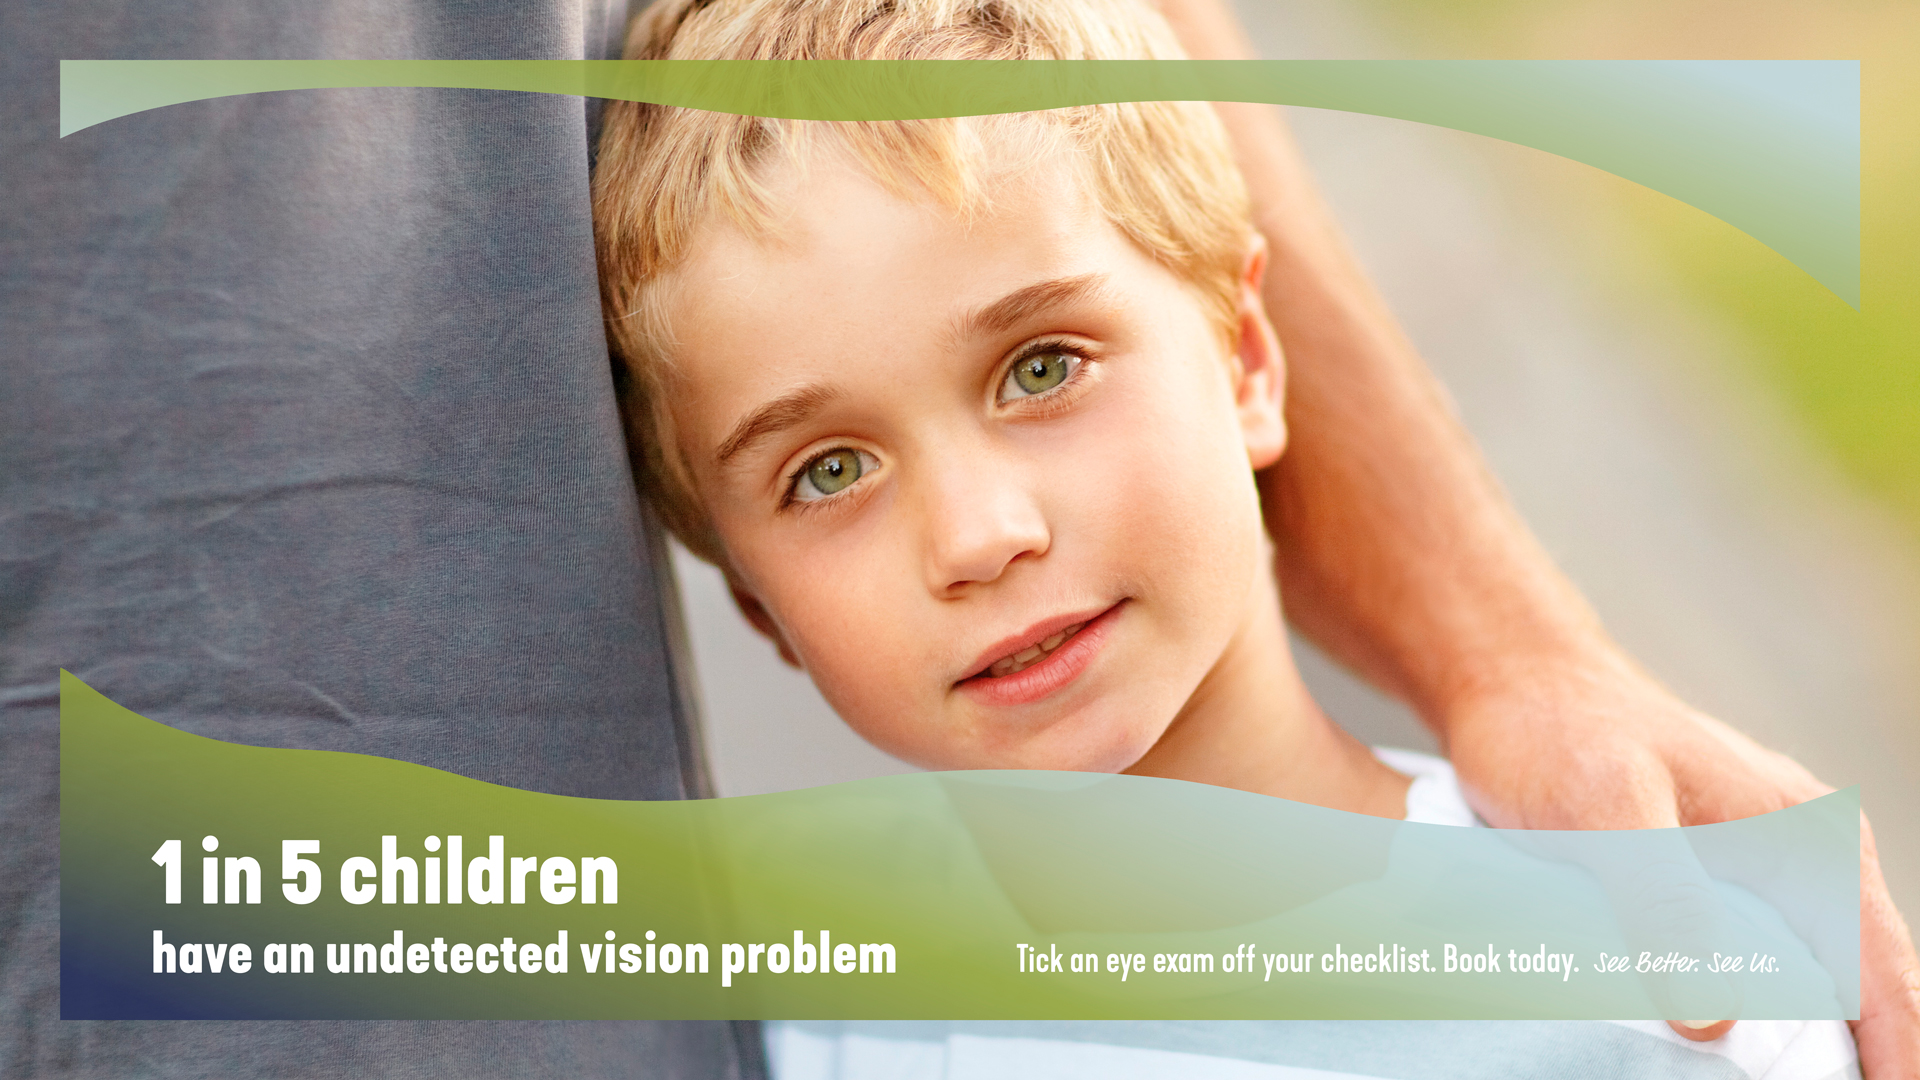 I in 5 kids have an undetected vision problem. Could yours be one of them?